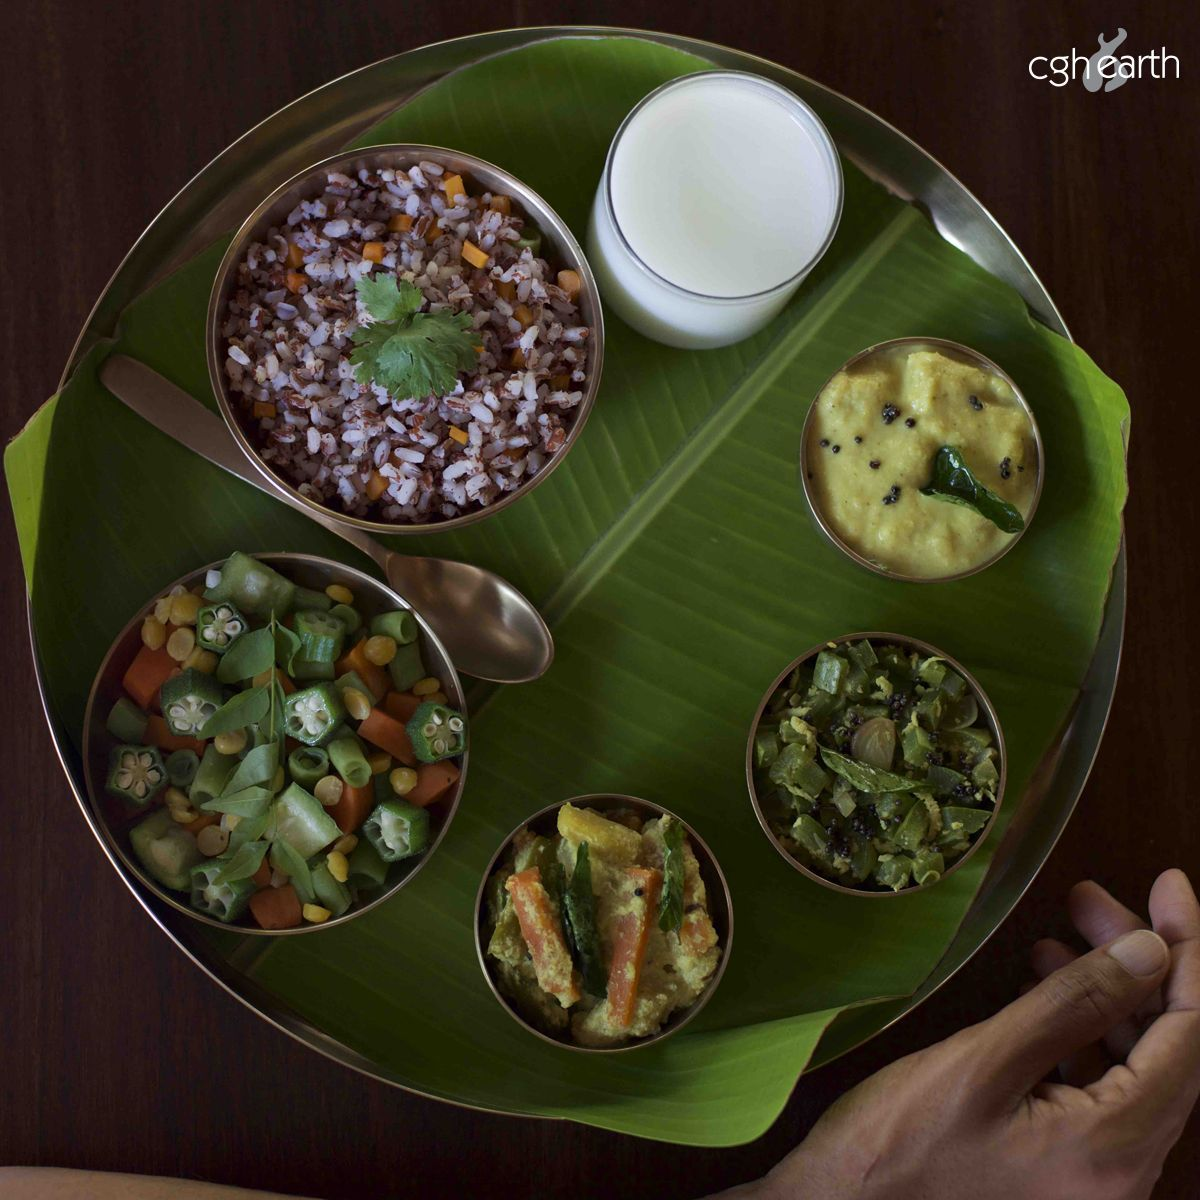 Cgh earth cghearth twitter indian cuisine pinterest earth ayurveda prescribes a sattvic diet to keep our bodies healthy and minds stress free at guests have organic food that is rich in prana forumfinder Choice Image